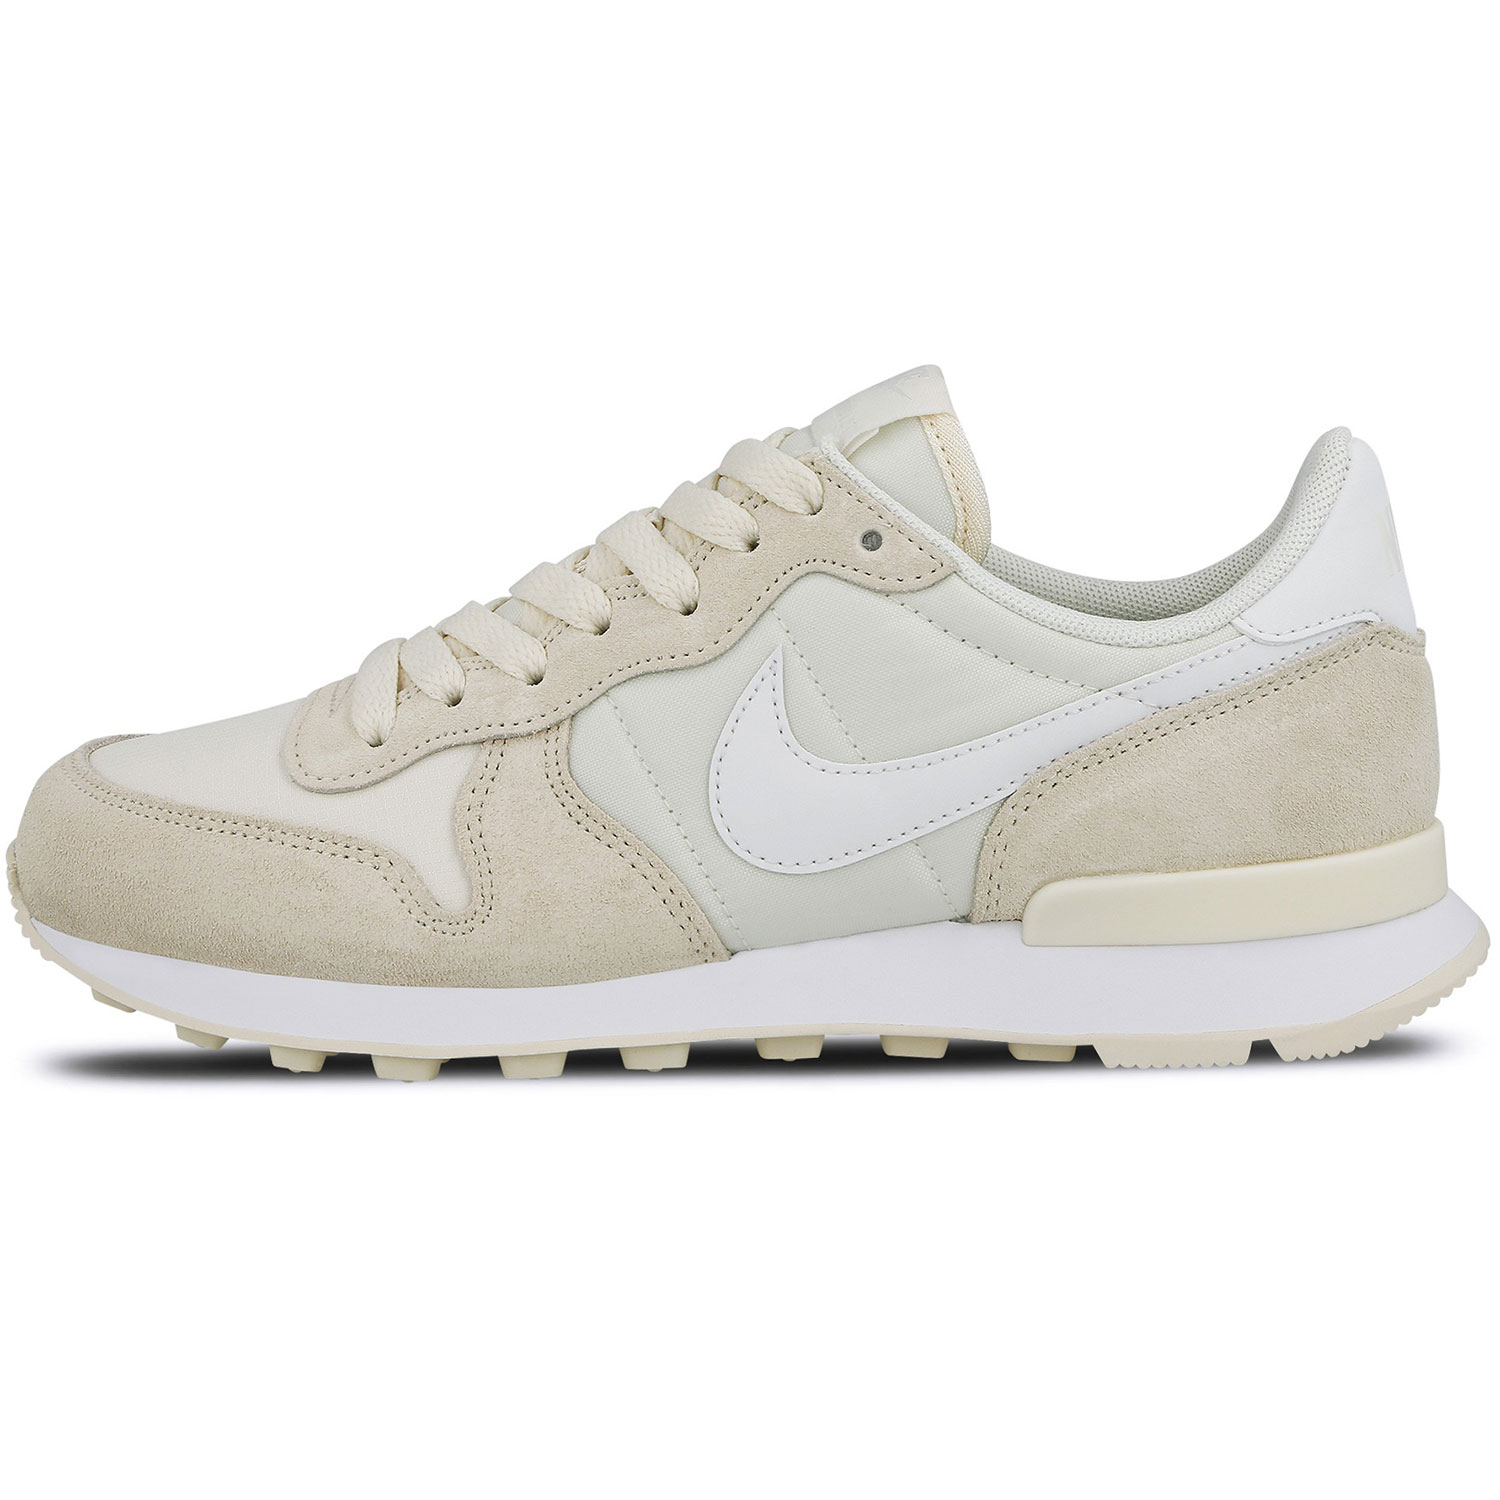 Nike WMNS Internationalist Damen Sneaker pale ivory 828407 104